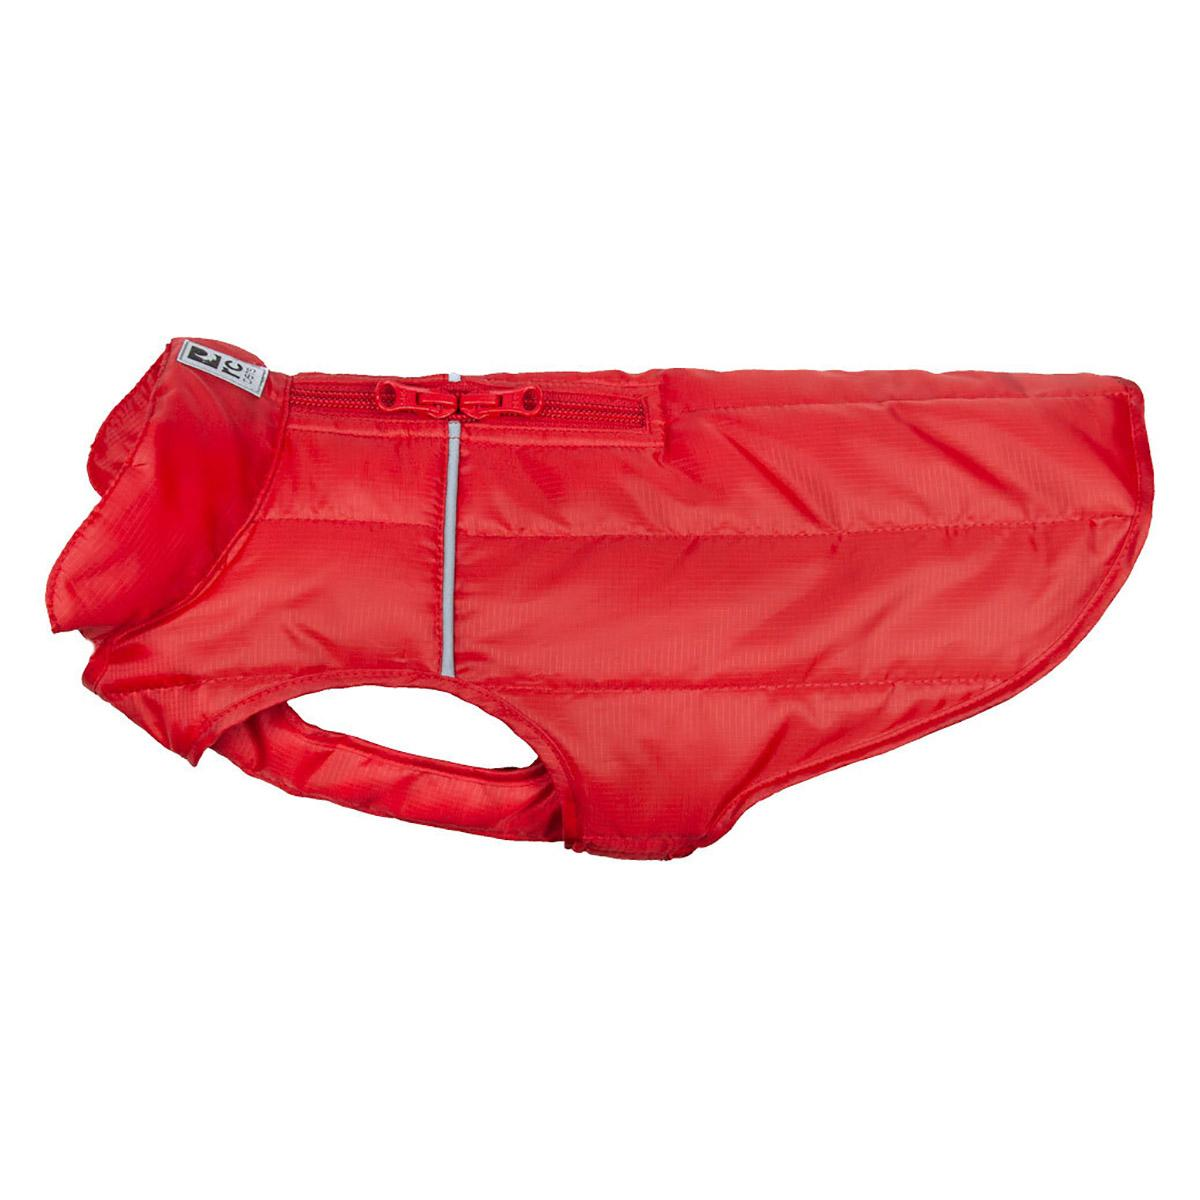 RC Pets Stratus Puffer Dog Coat - Red